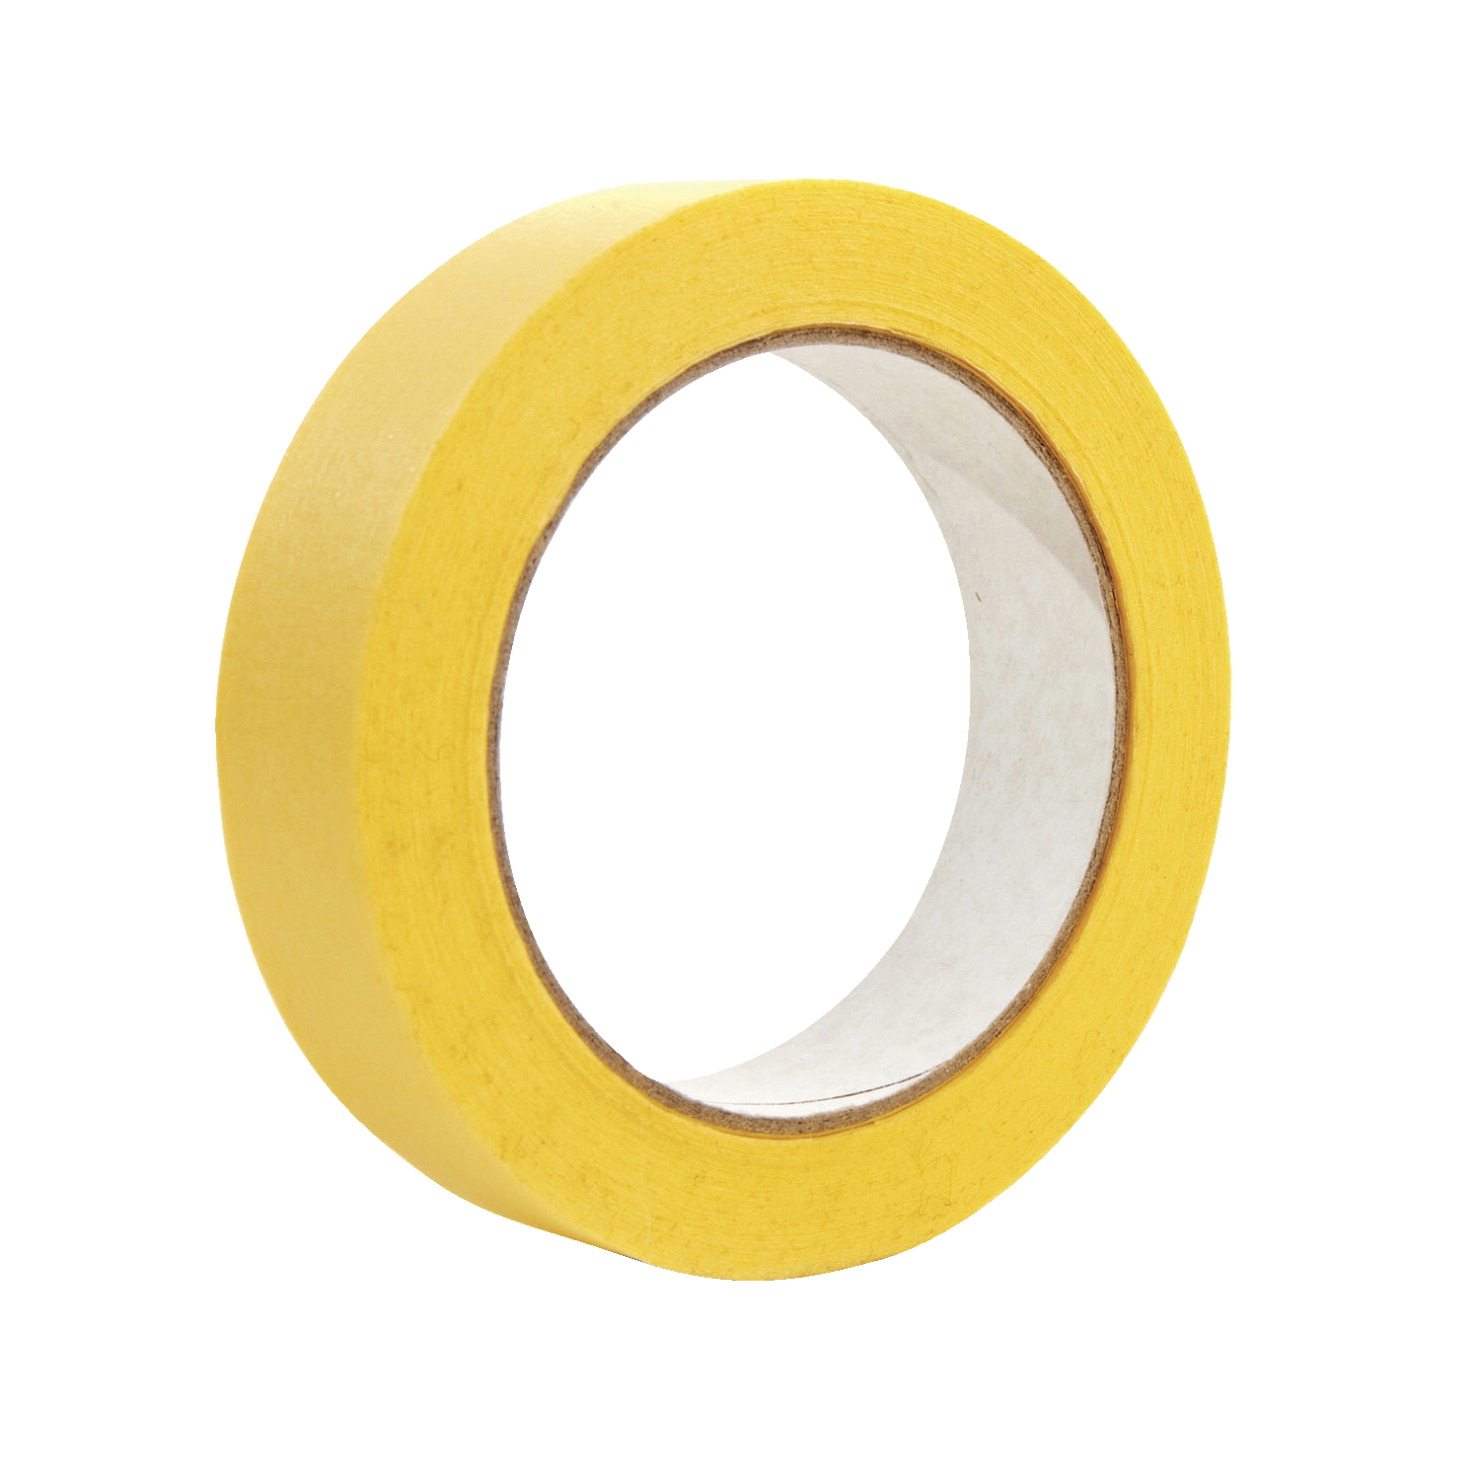 Creativity Street Masking Tape with 3 Inch Core, 1 Inch x 60 Yards, Yellow